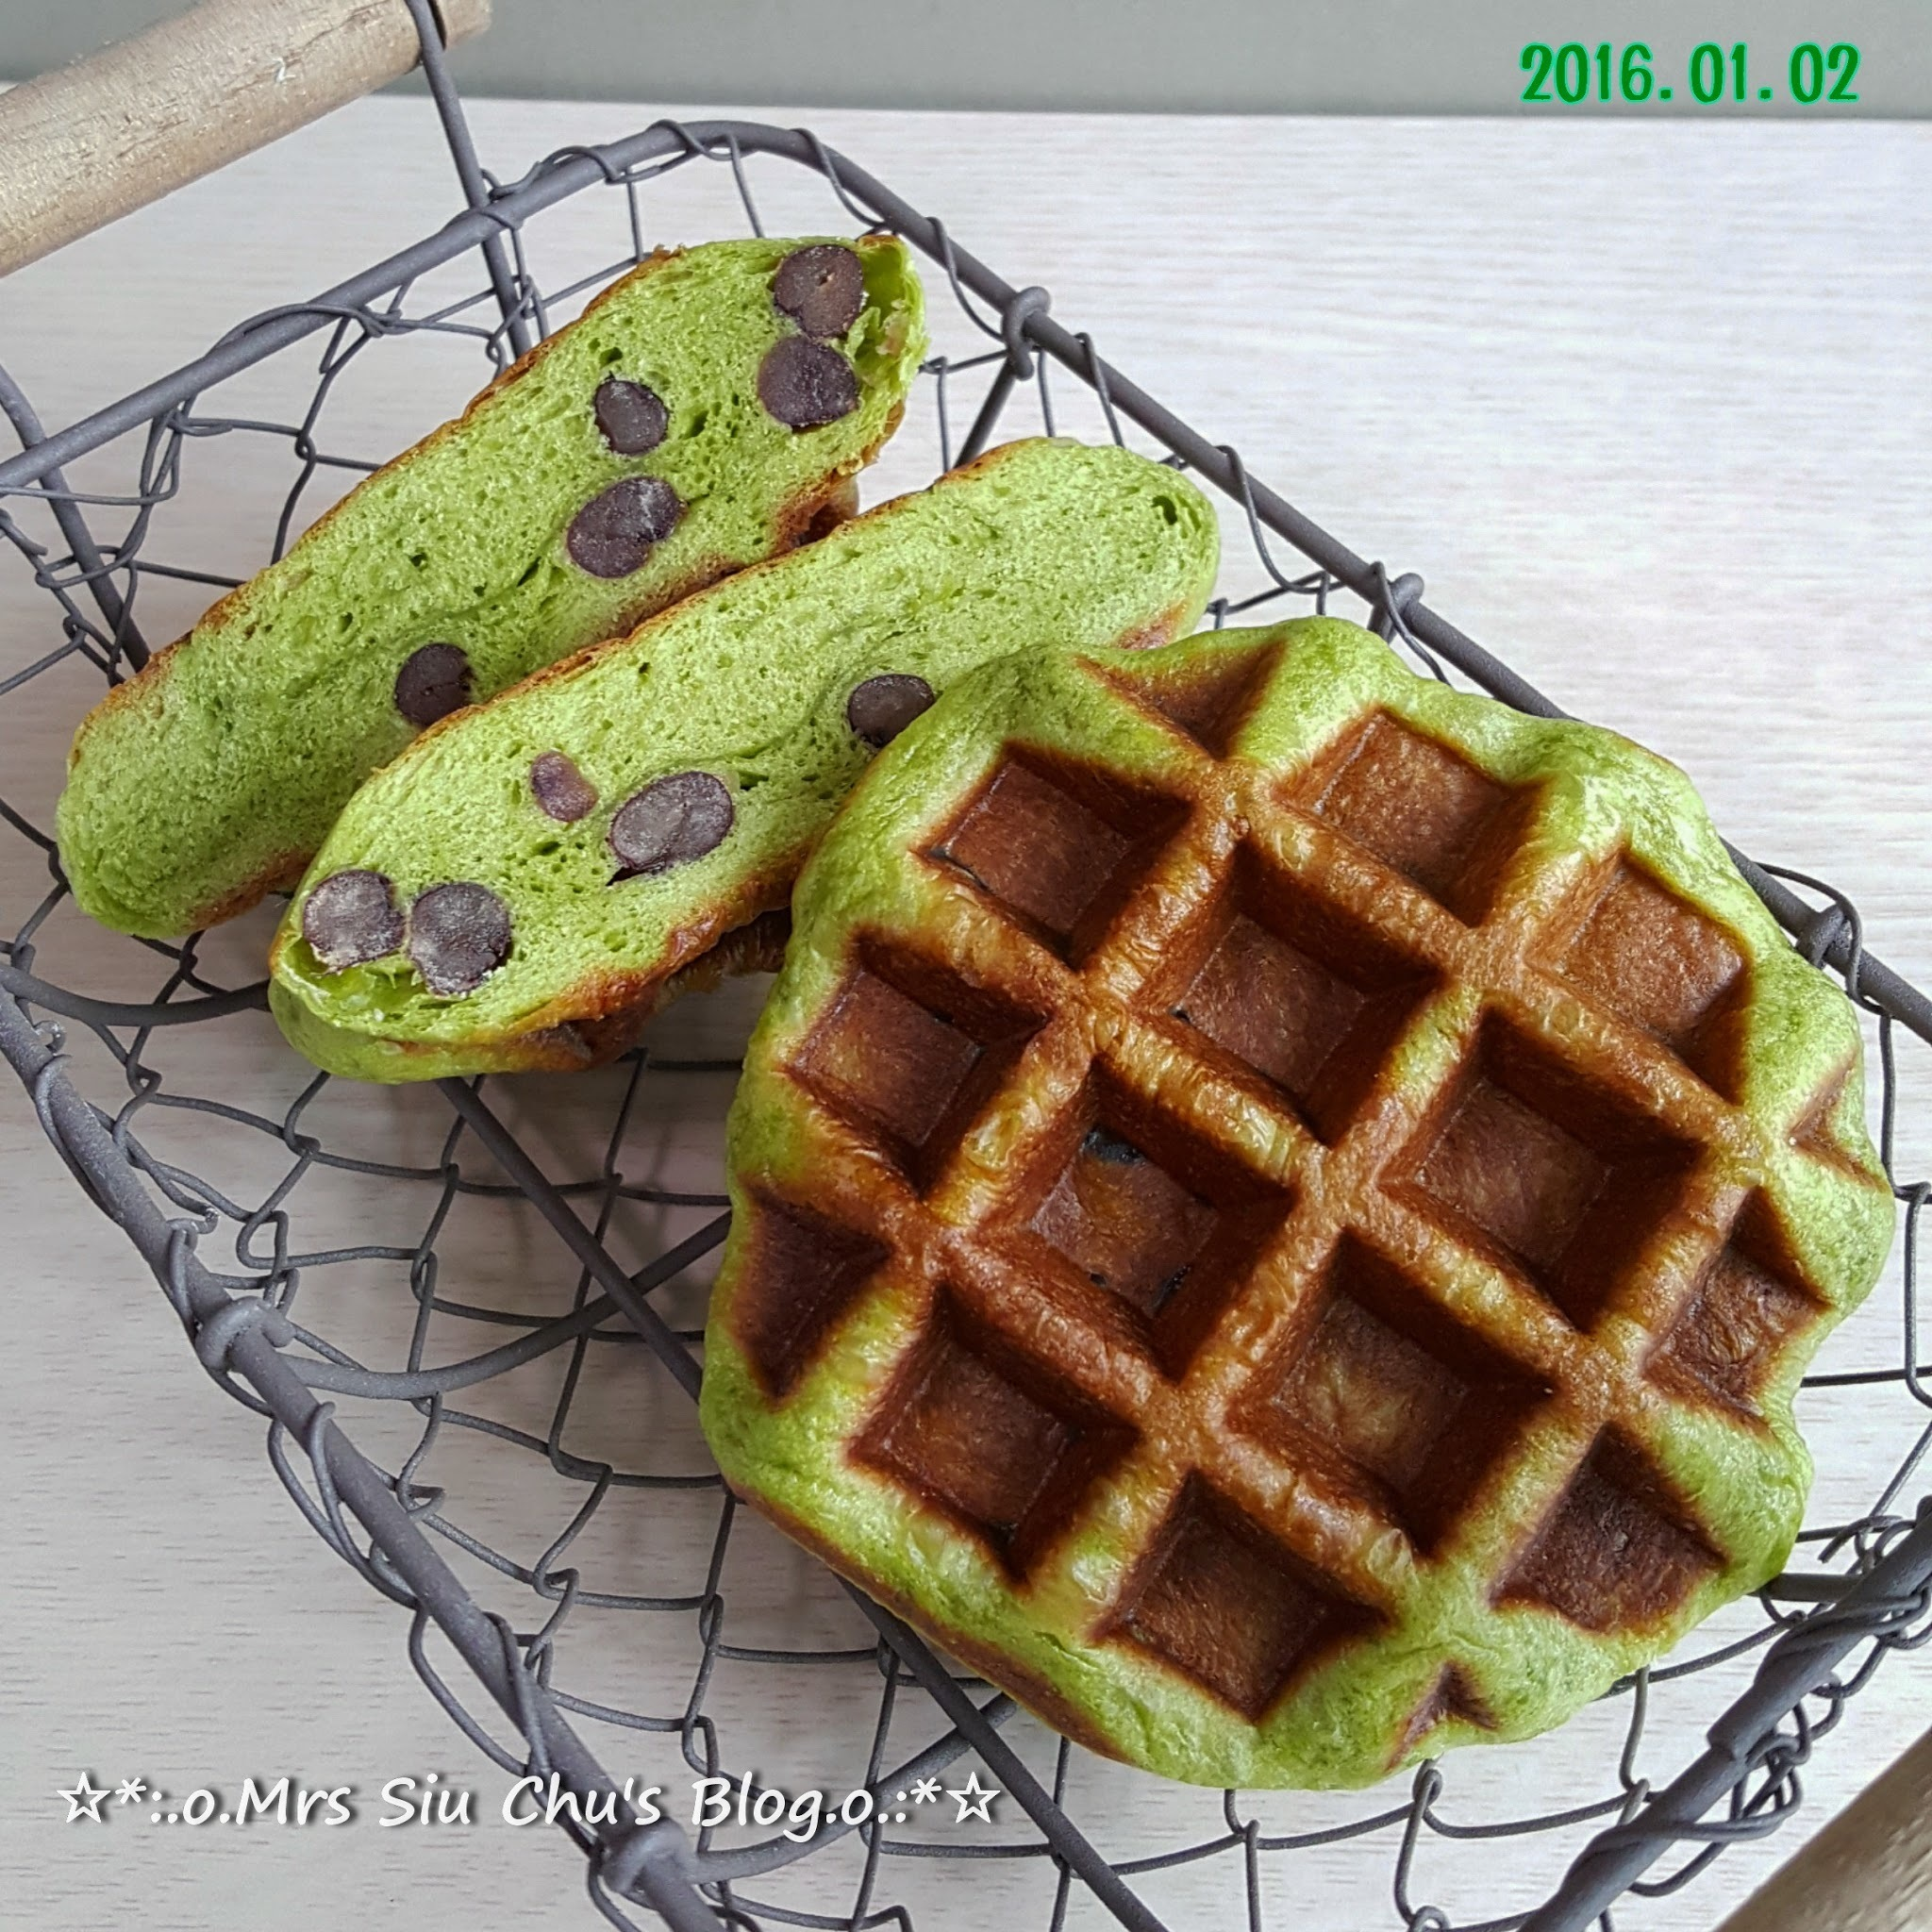 綠茶紅豆列日窩夫 Green tea and red bean Liège Waffle [Vitantonio VWH-120-R, 附食譜]